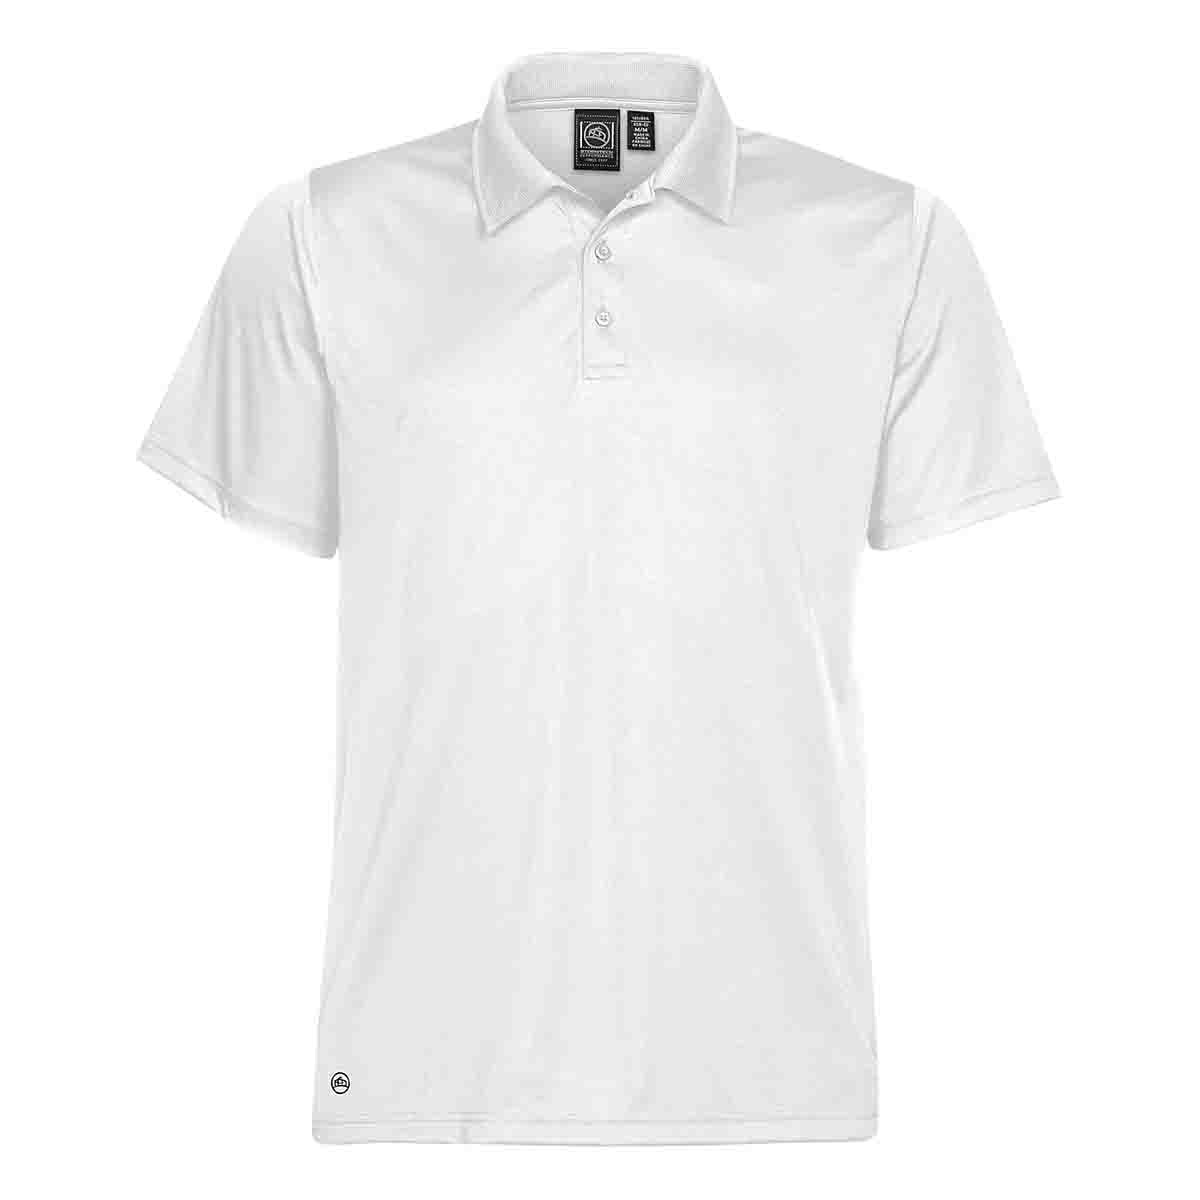 Superdry polo model Eclipse